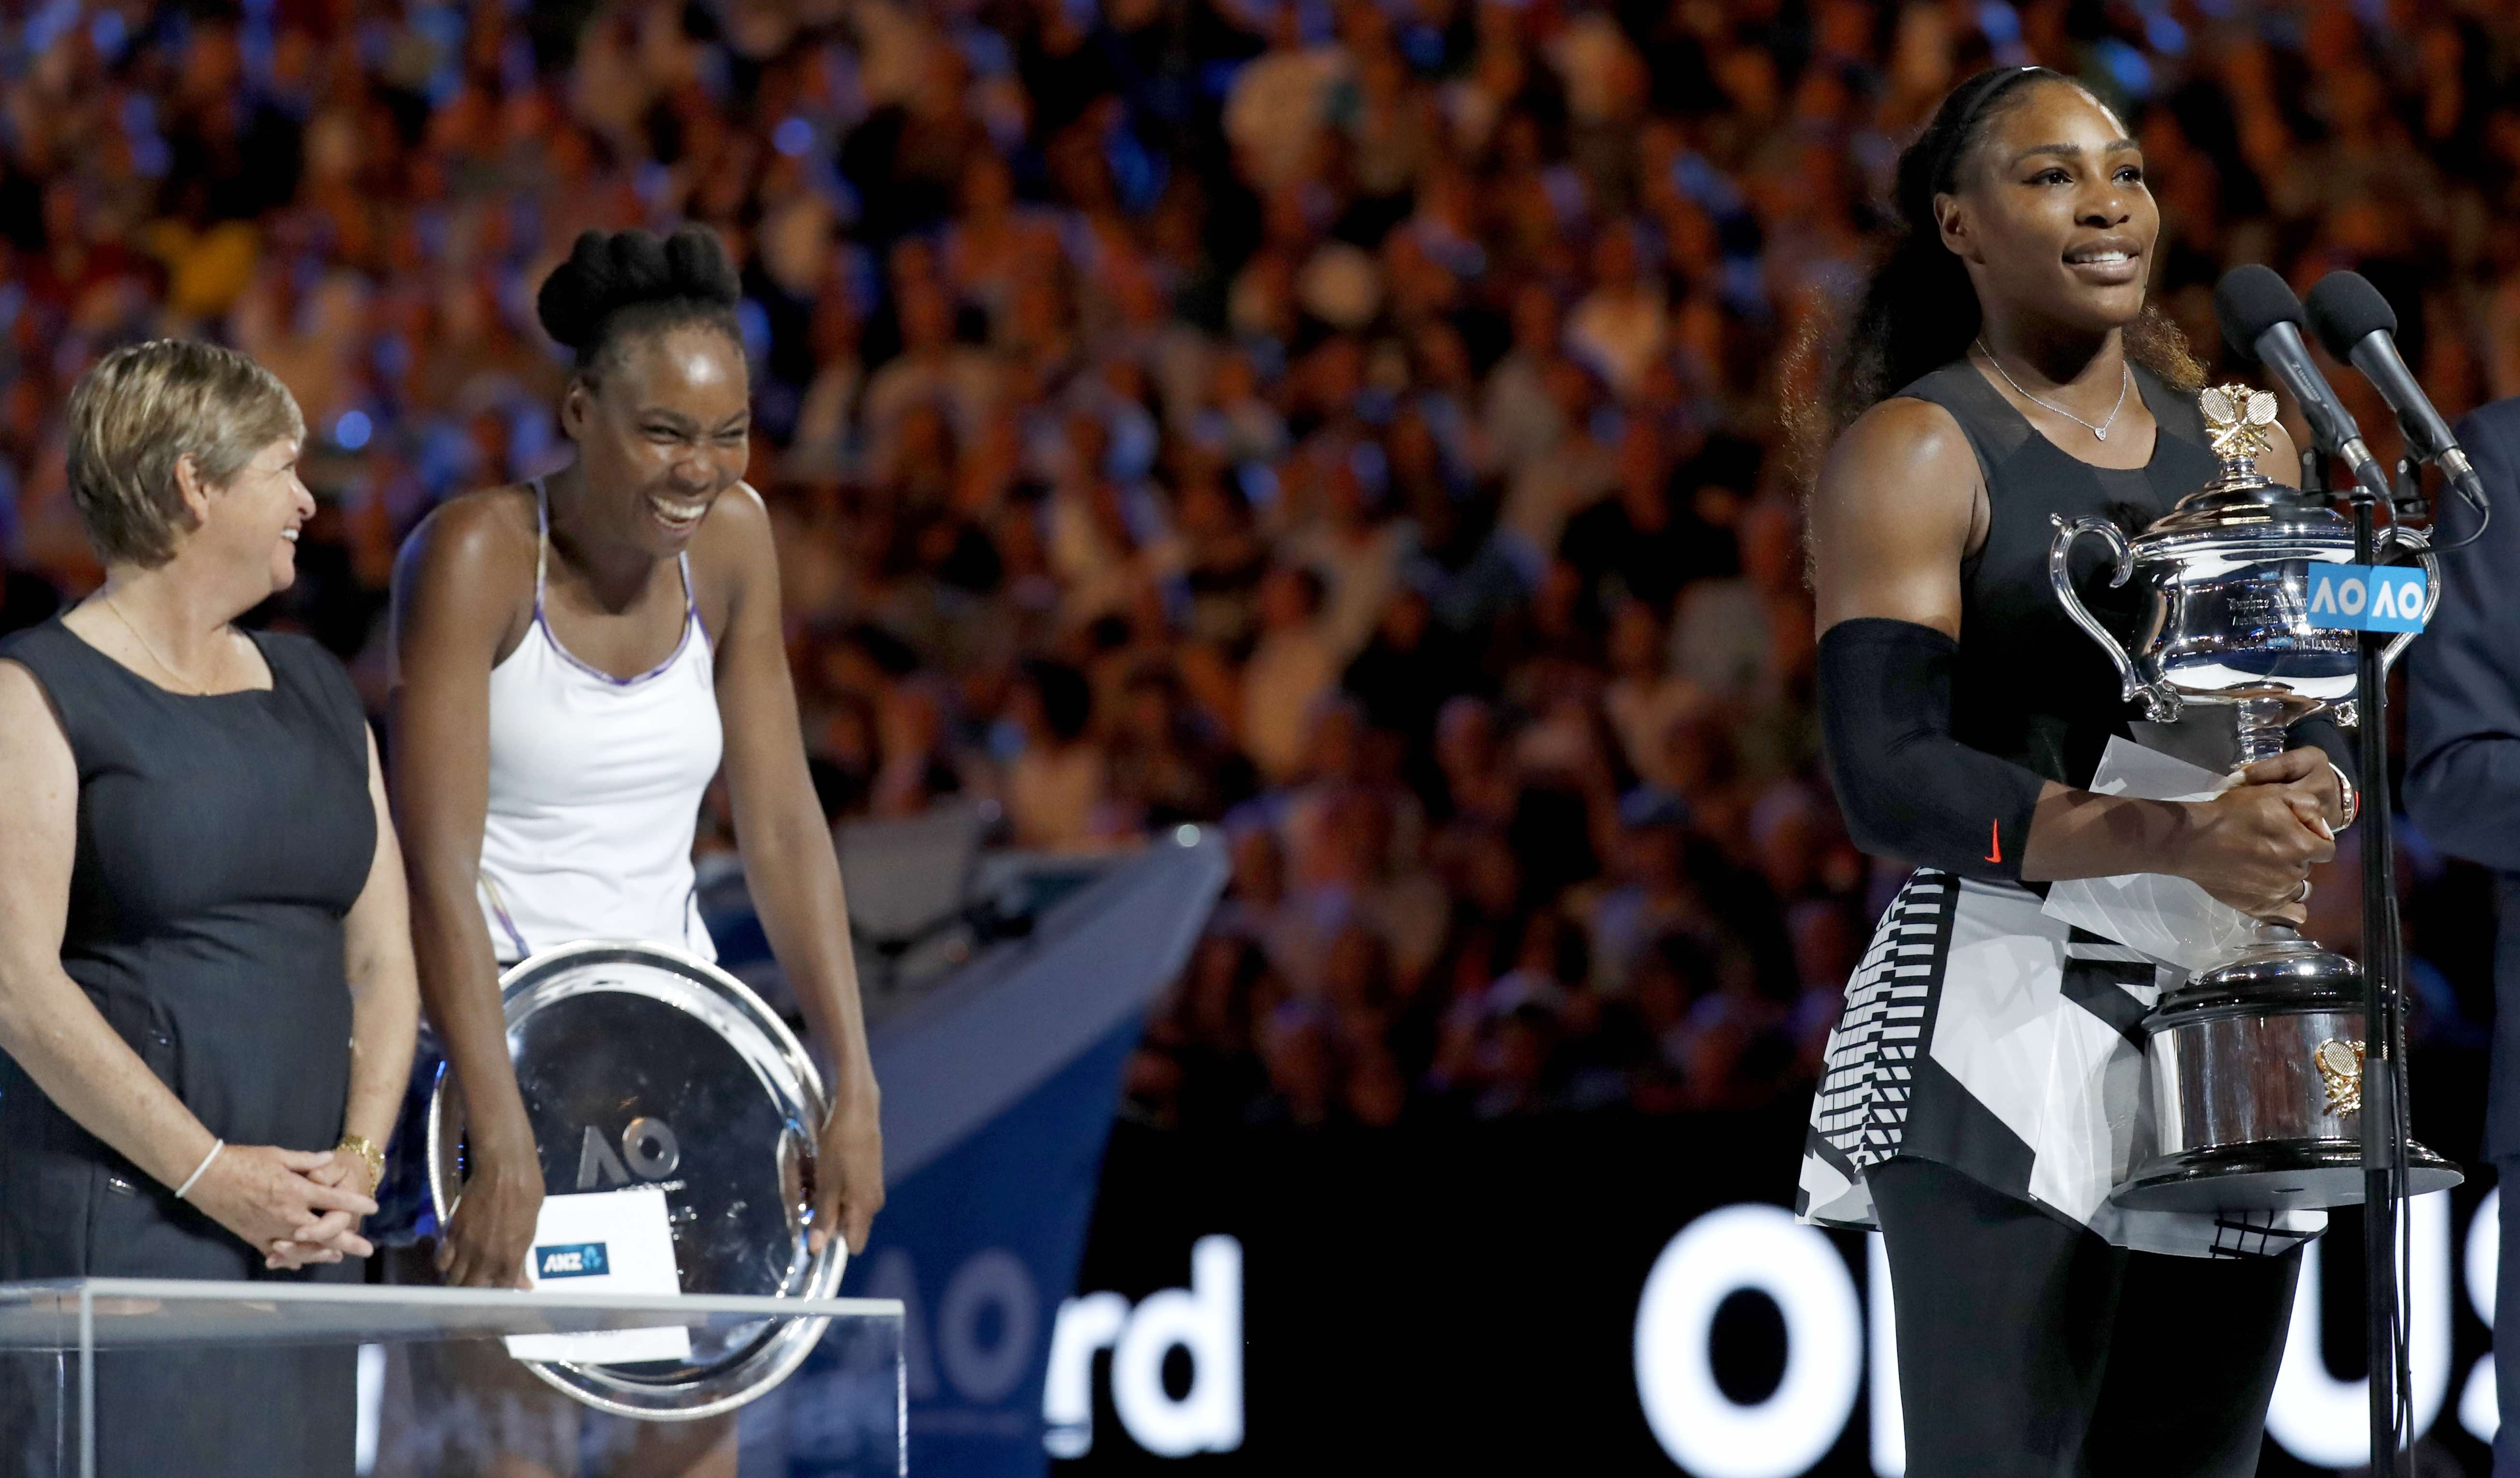 Serena Williams beats sister Venus to win the Australian Open